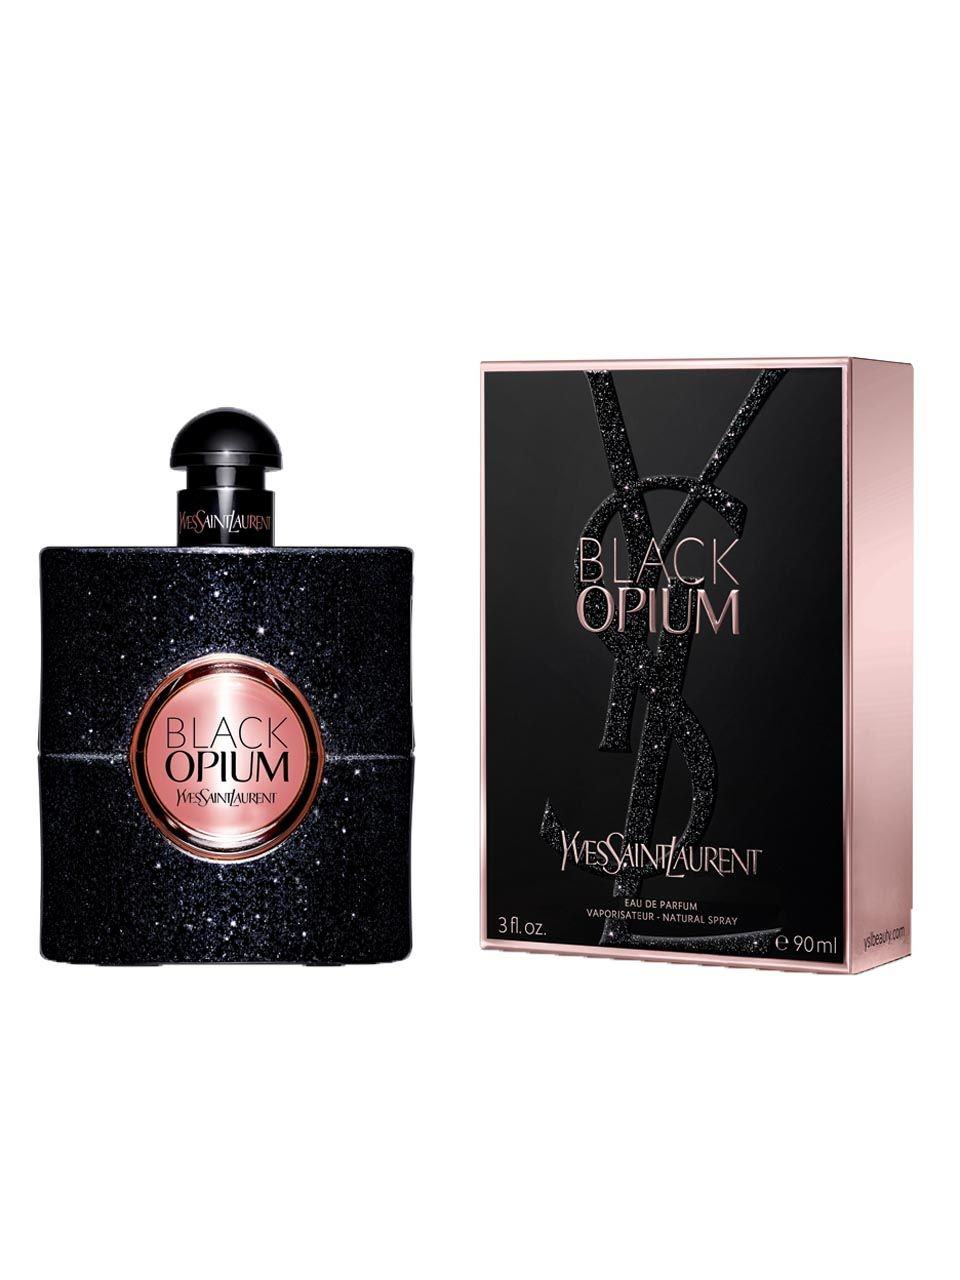 PROFUMO YVES SAINT LAURENT OPIUM BLACK DONNA EAU DE PARFUM ML 30